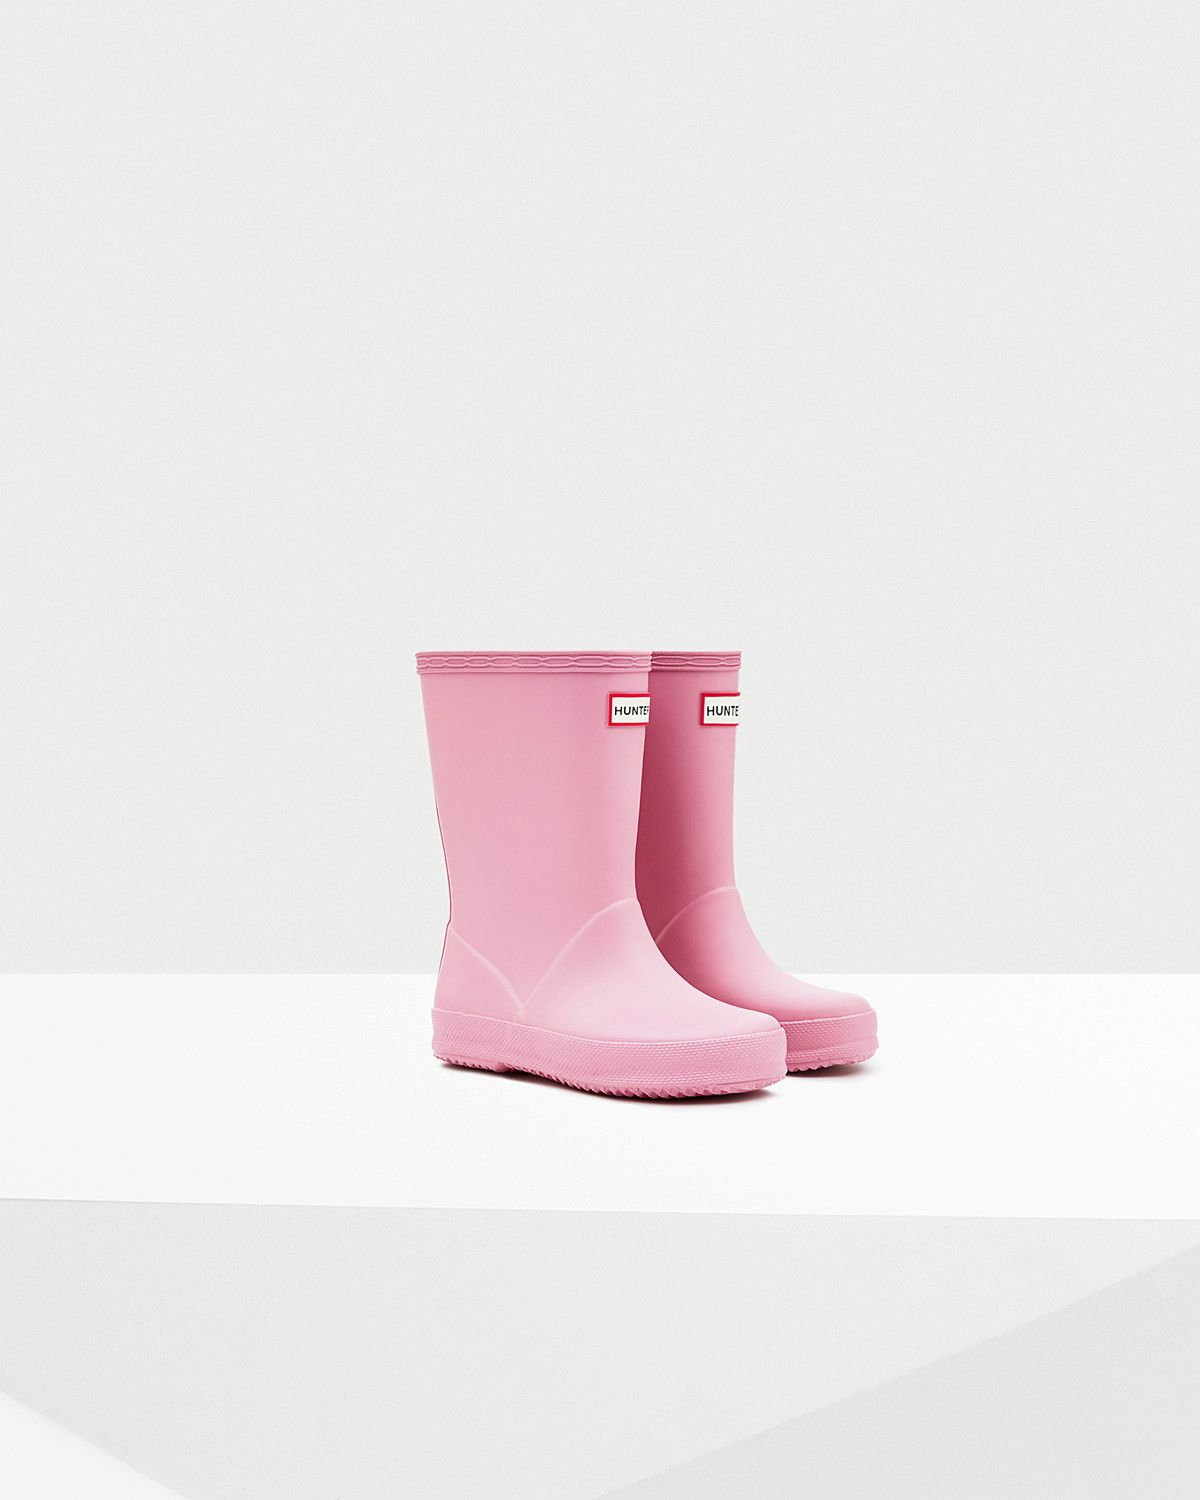 Original Kids' First Classic Hunter Rain Boots Fondant Pink - Size 8 Toddler